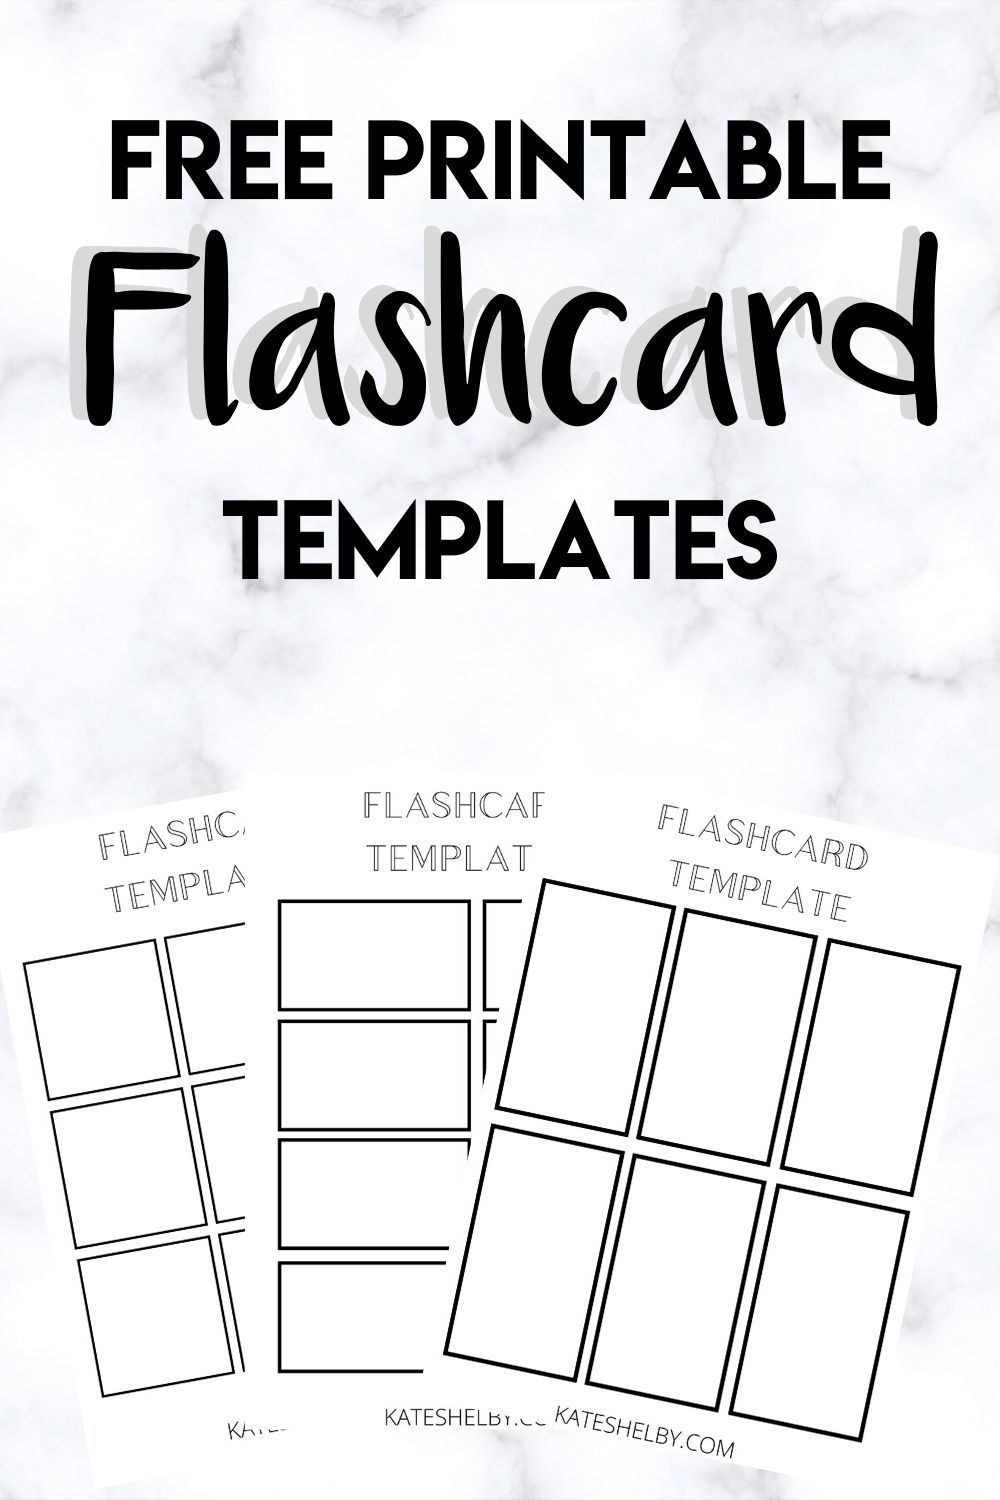 Printable Flashcard Template in 2020 (With images ...